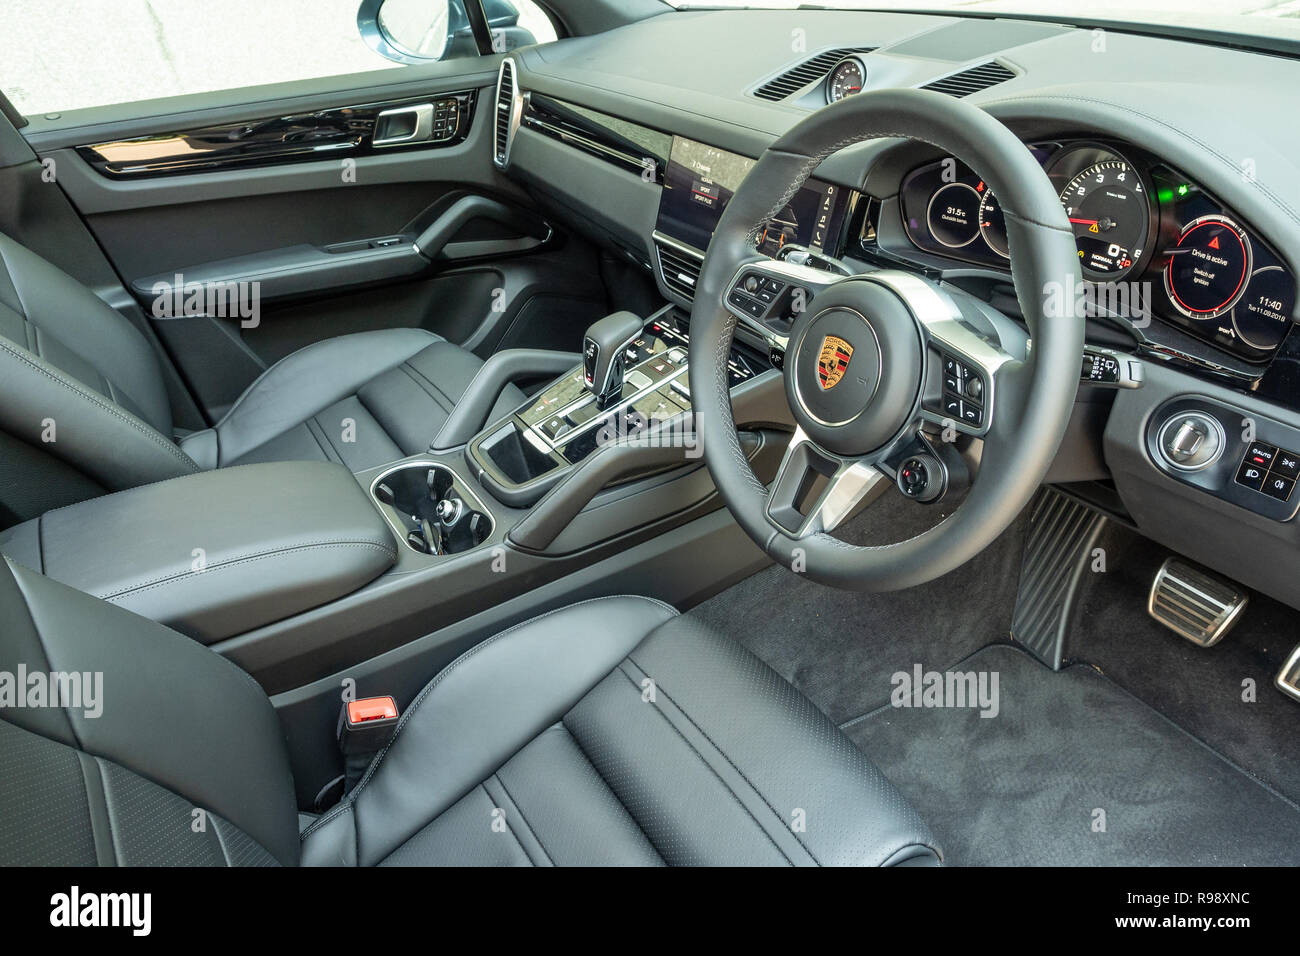 Porsche Cayenne S High Resolution Stock Photography And Images Alamy